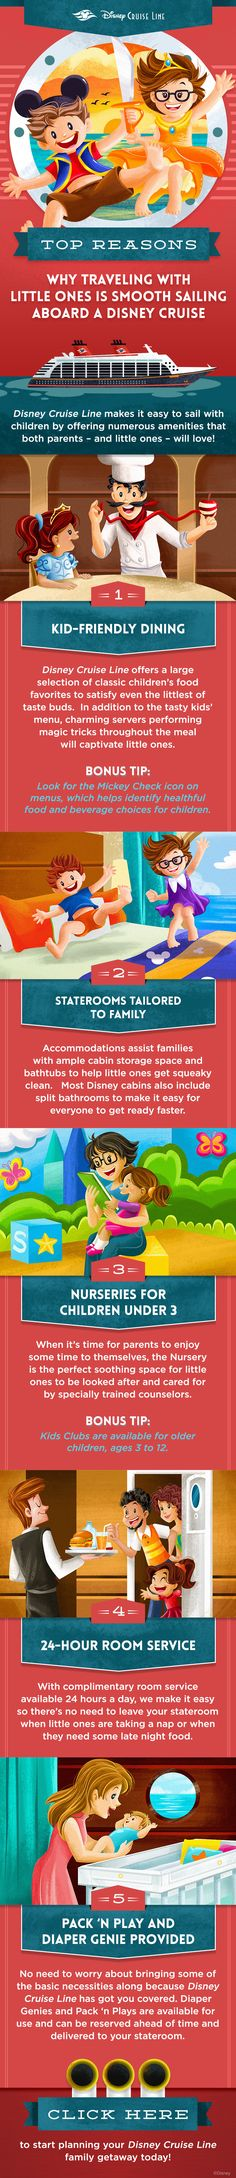 Disney Cruise Line makes it easy to sail with children by offering numerous amenities that both parents - and little ones - will love! Here are some top reasons why traveling with little ones is smooth sailing aboard a Disney Cruise! Best Cruise, Cruise Tips, Cruise Vacation, Disney Destinations, Disney Vacations, Disney Travel, Family Vacations, Disney Cruise Line, Walt Disney World